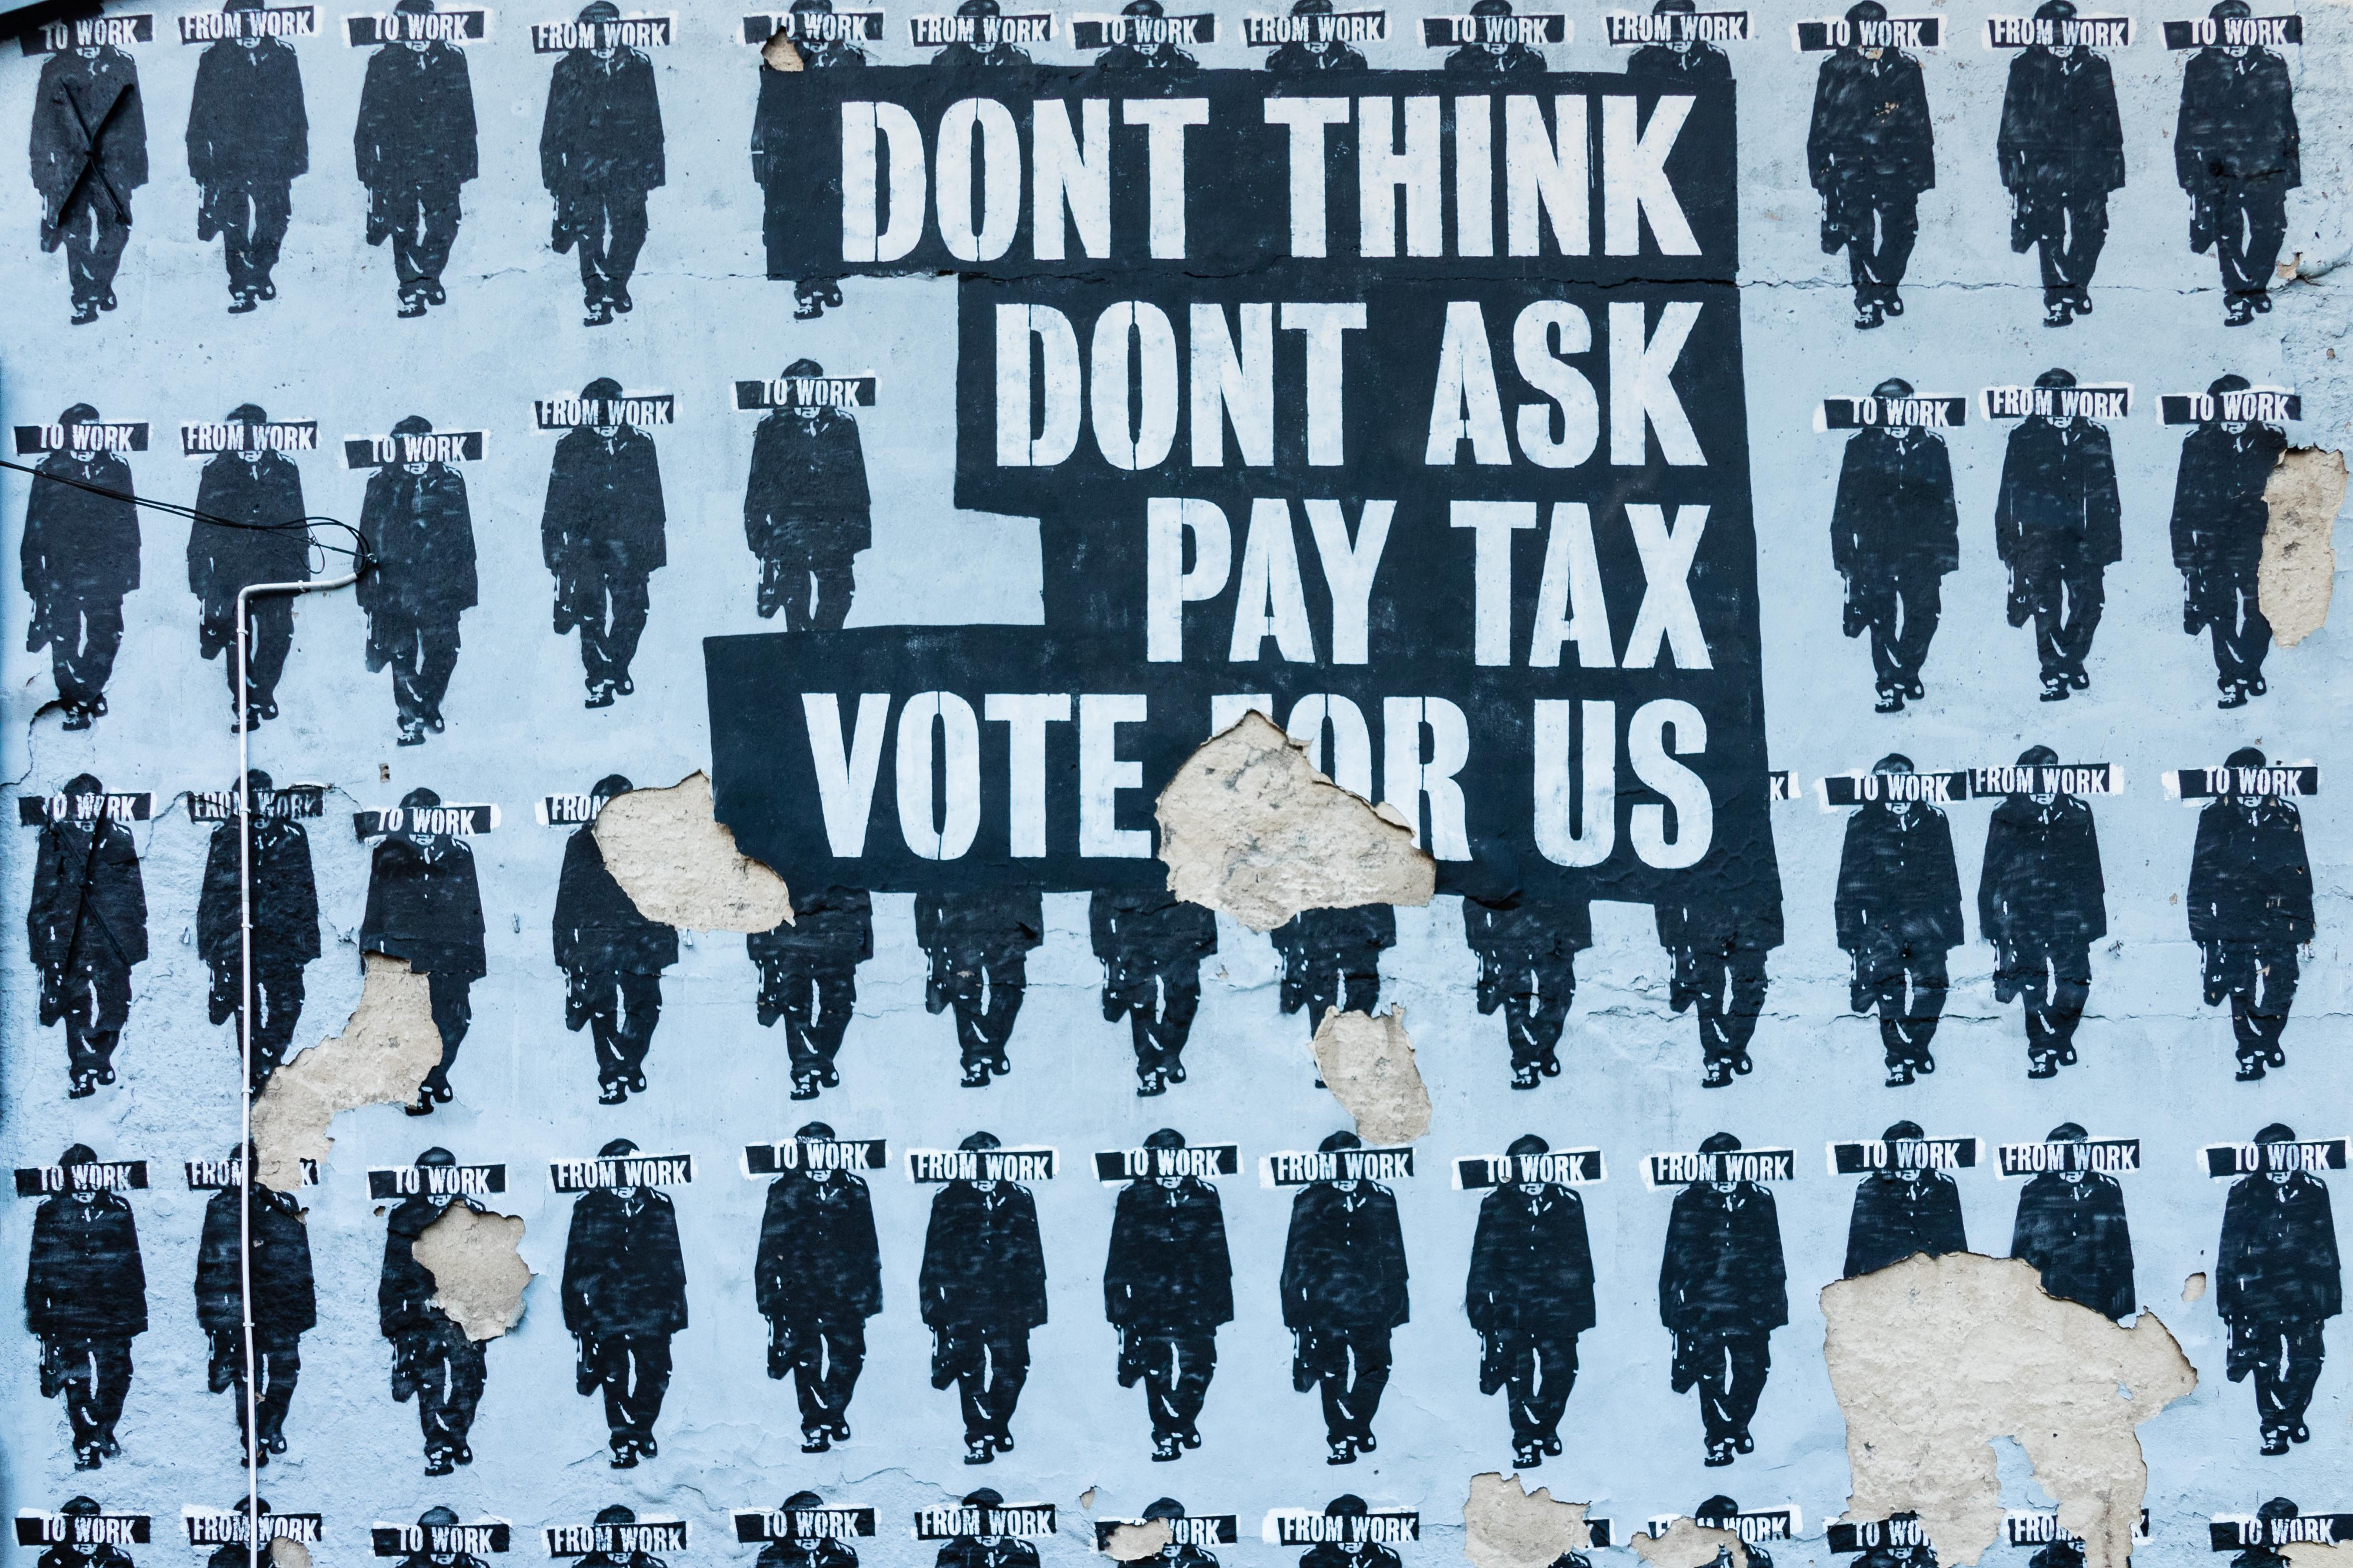 Political poster telling people to pay taxes and not ask questions